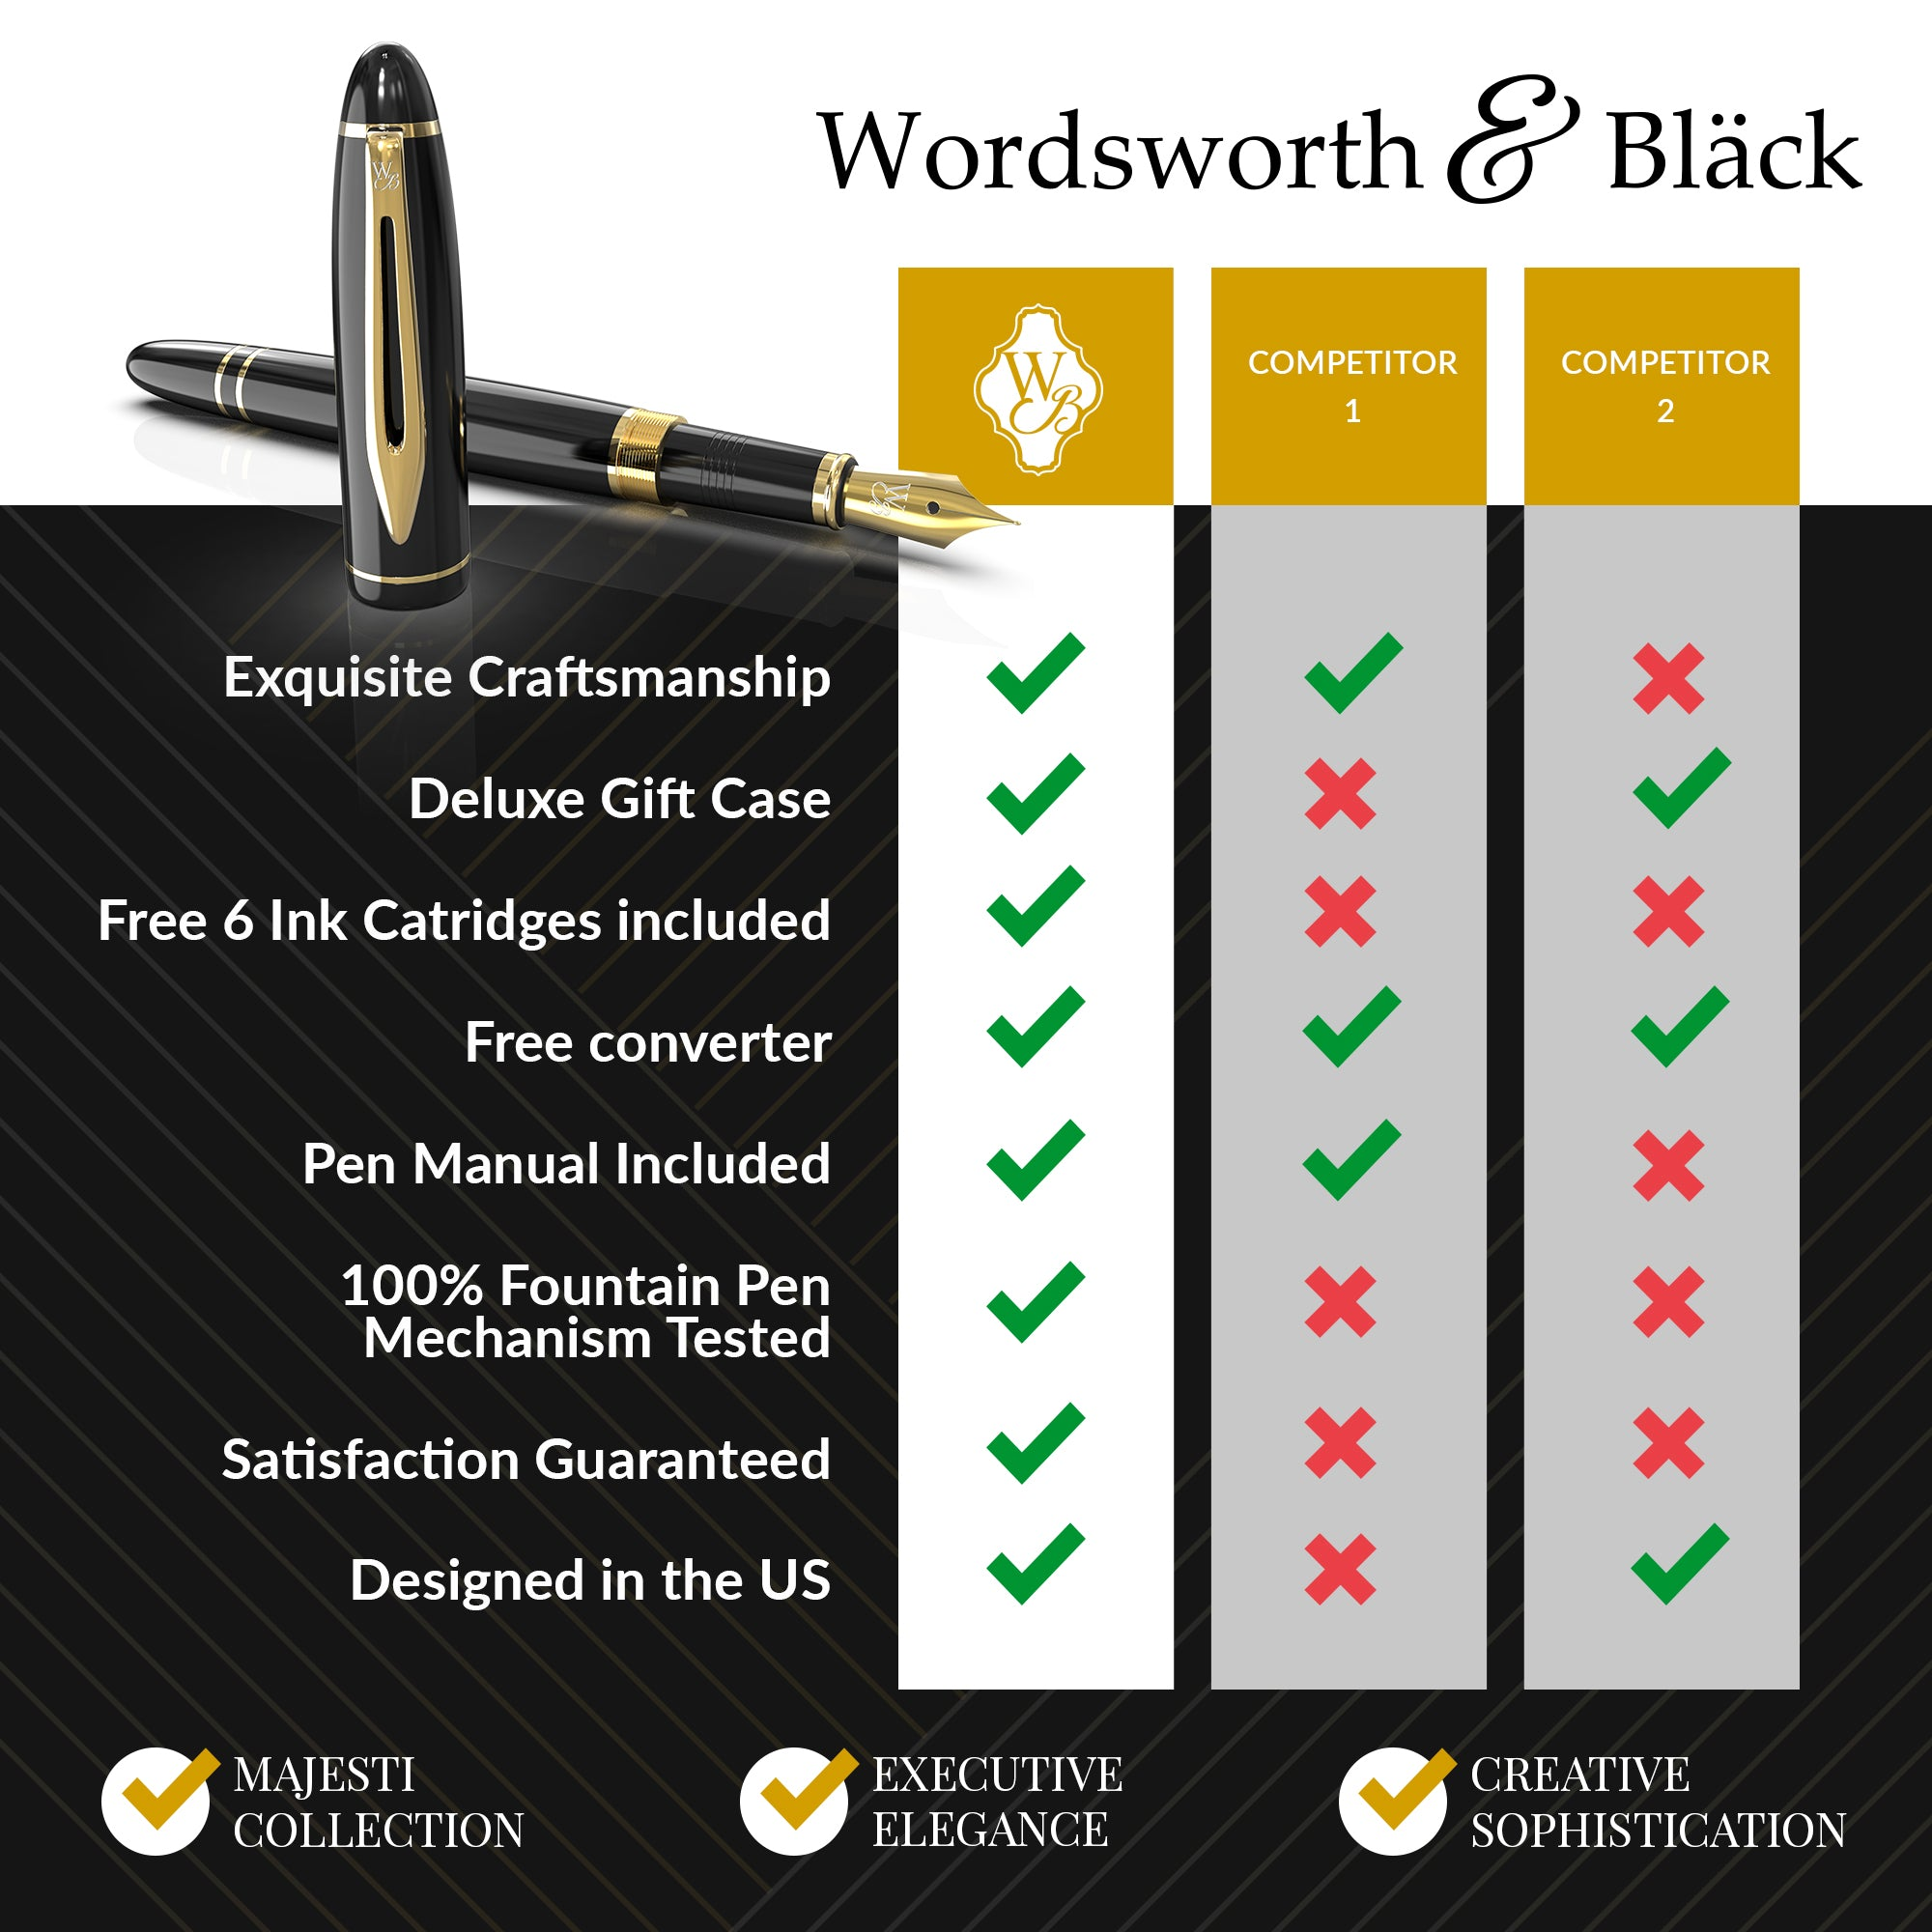 Wordsworth & Black Majesti Fountain Pen Set, Medium Nib, Includes 6 Ink Cartridges and Ink Refill Converter, Gift Case, Journaling, Calligraphy, Smooth Writing [Black Gold], Perfect for Men and Women